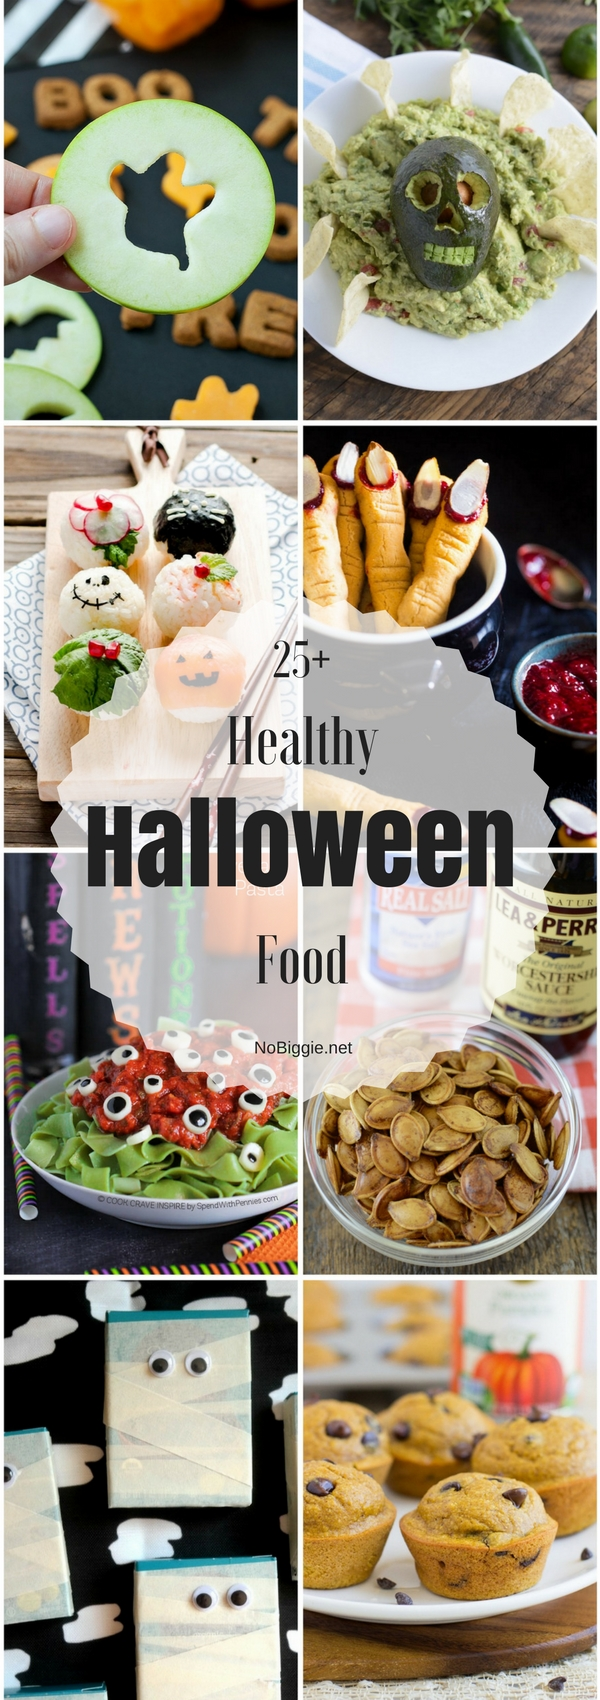 25+ Healthy Halloween Food | NoBiggie.net